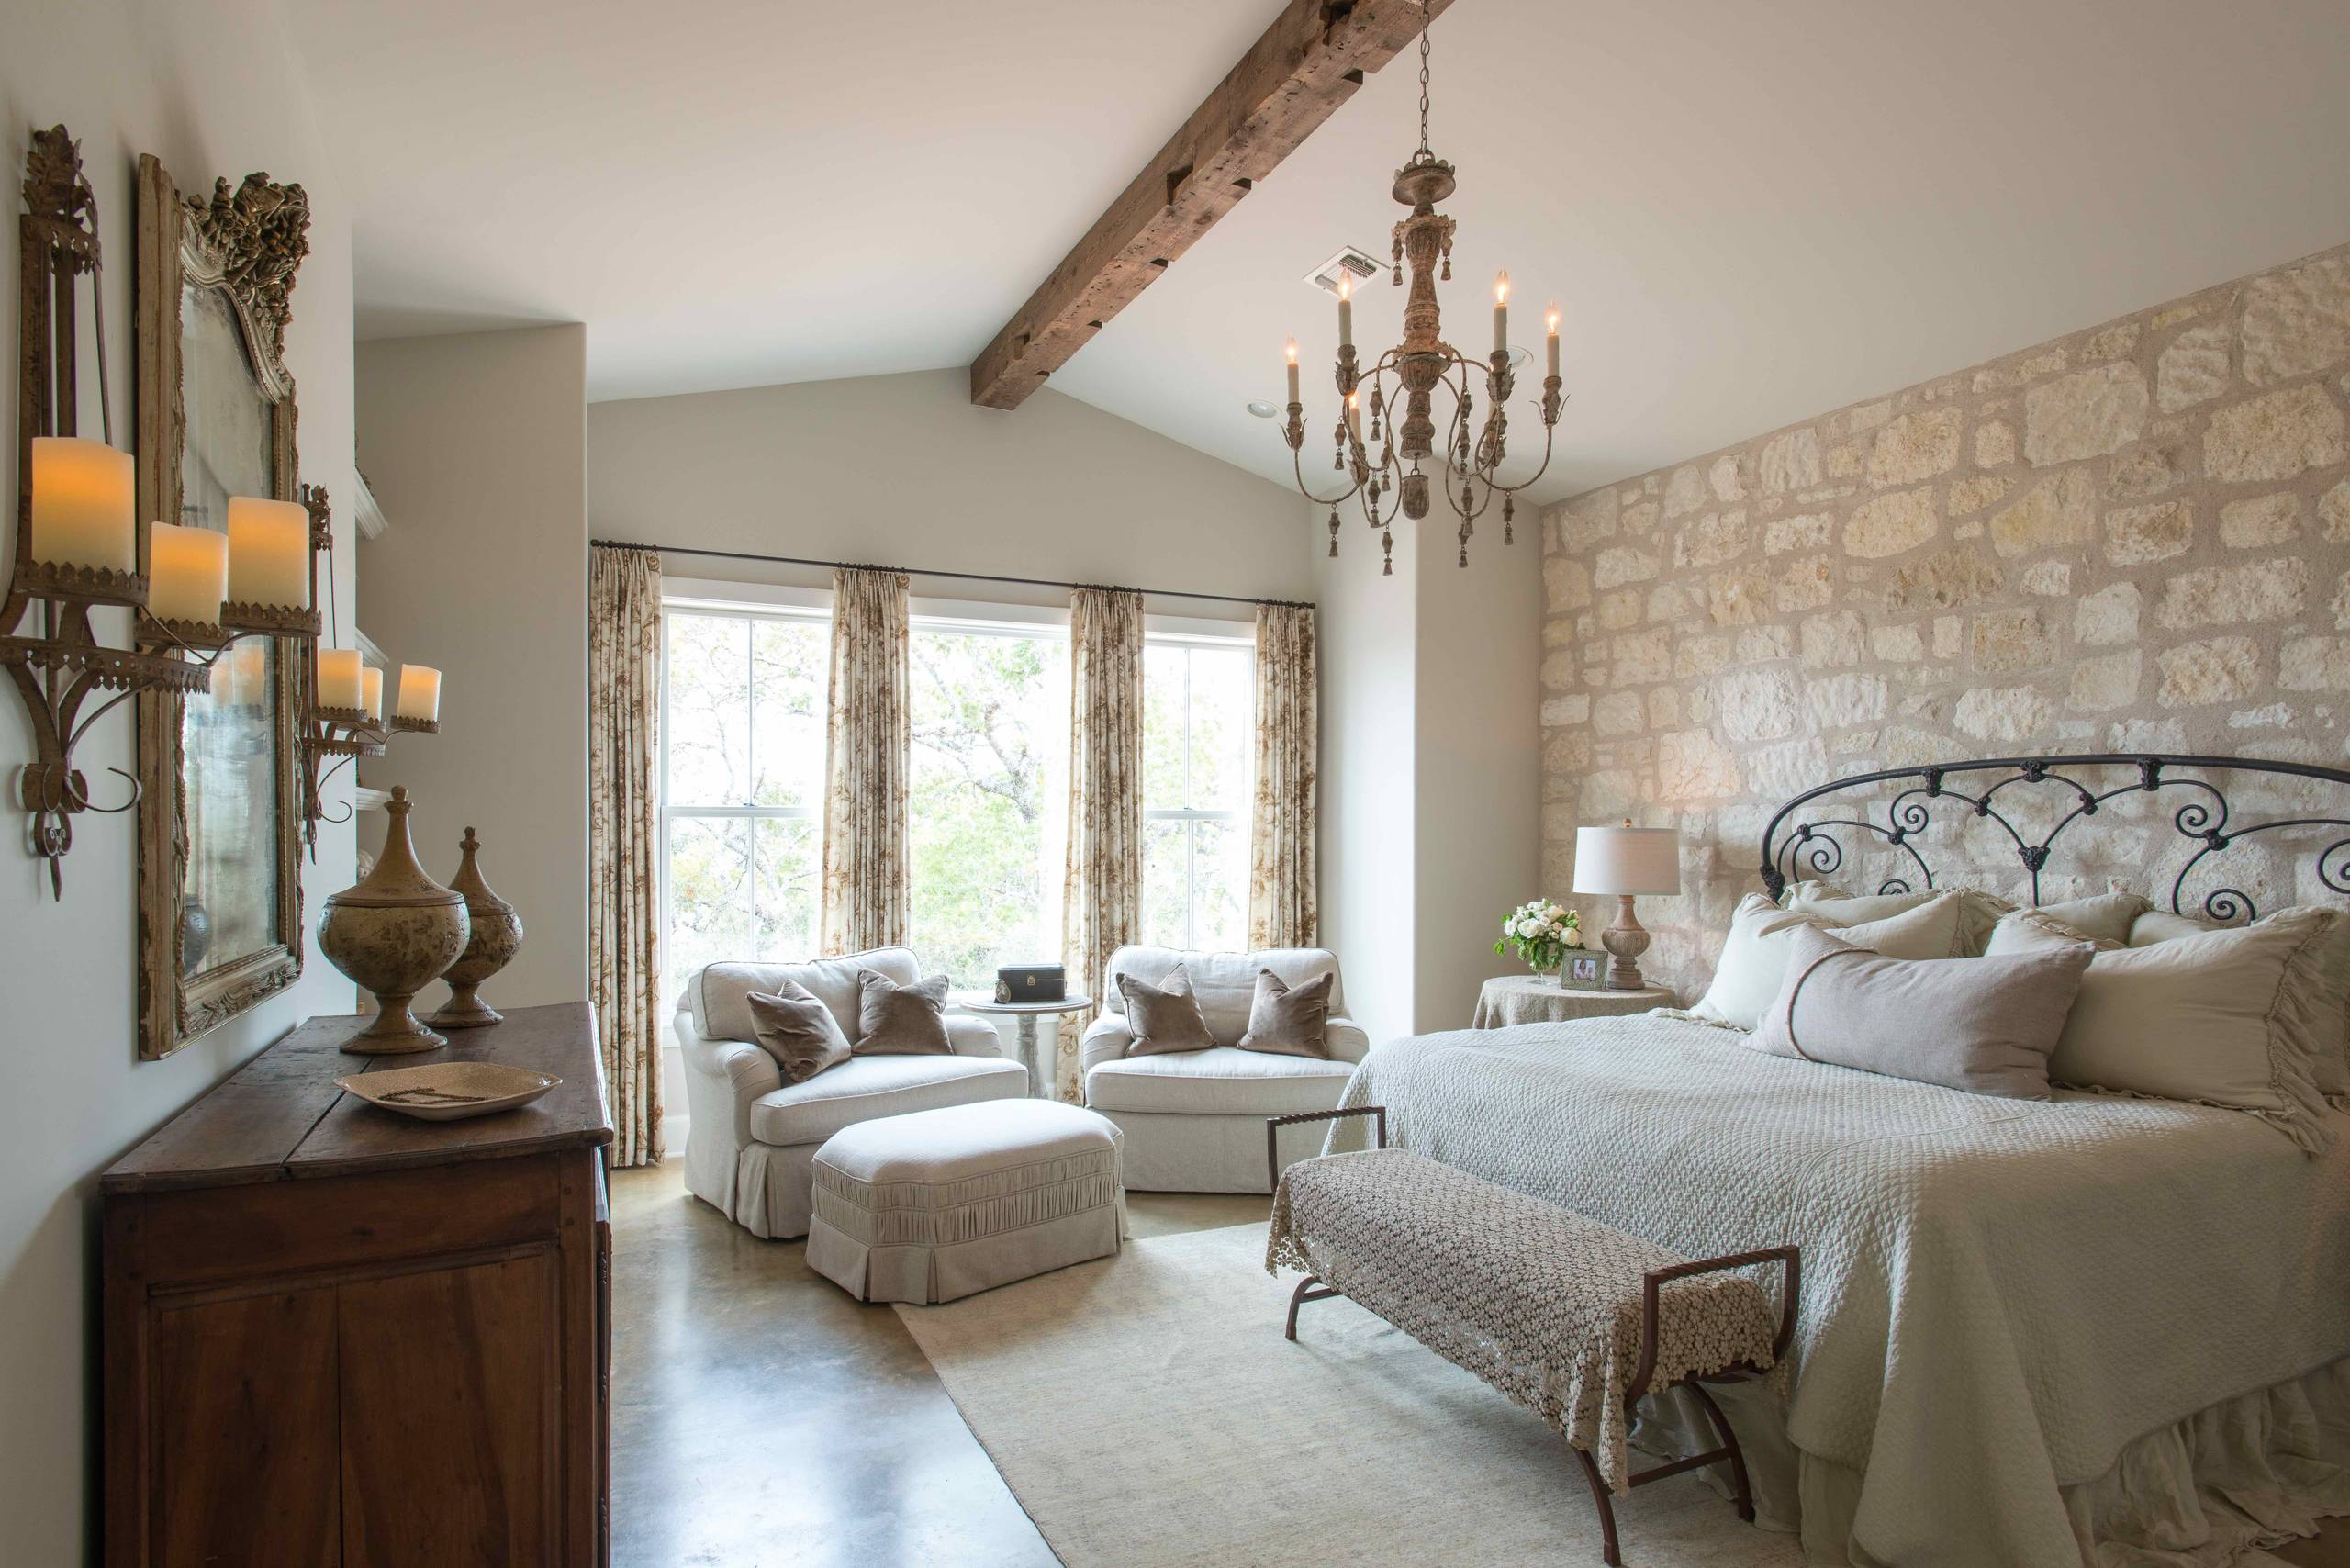 5 Beautiful French Country Bedroom Pictures & Ideas - January